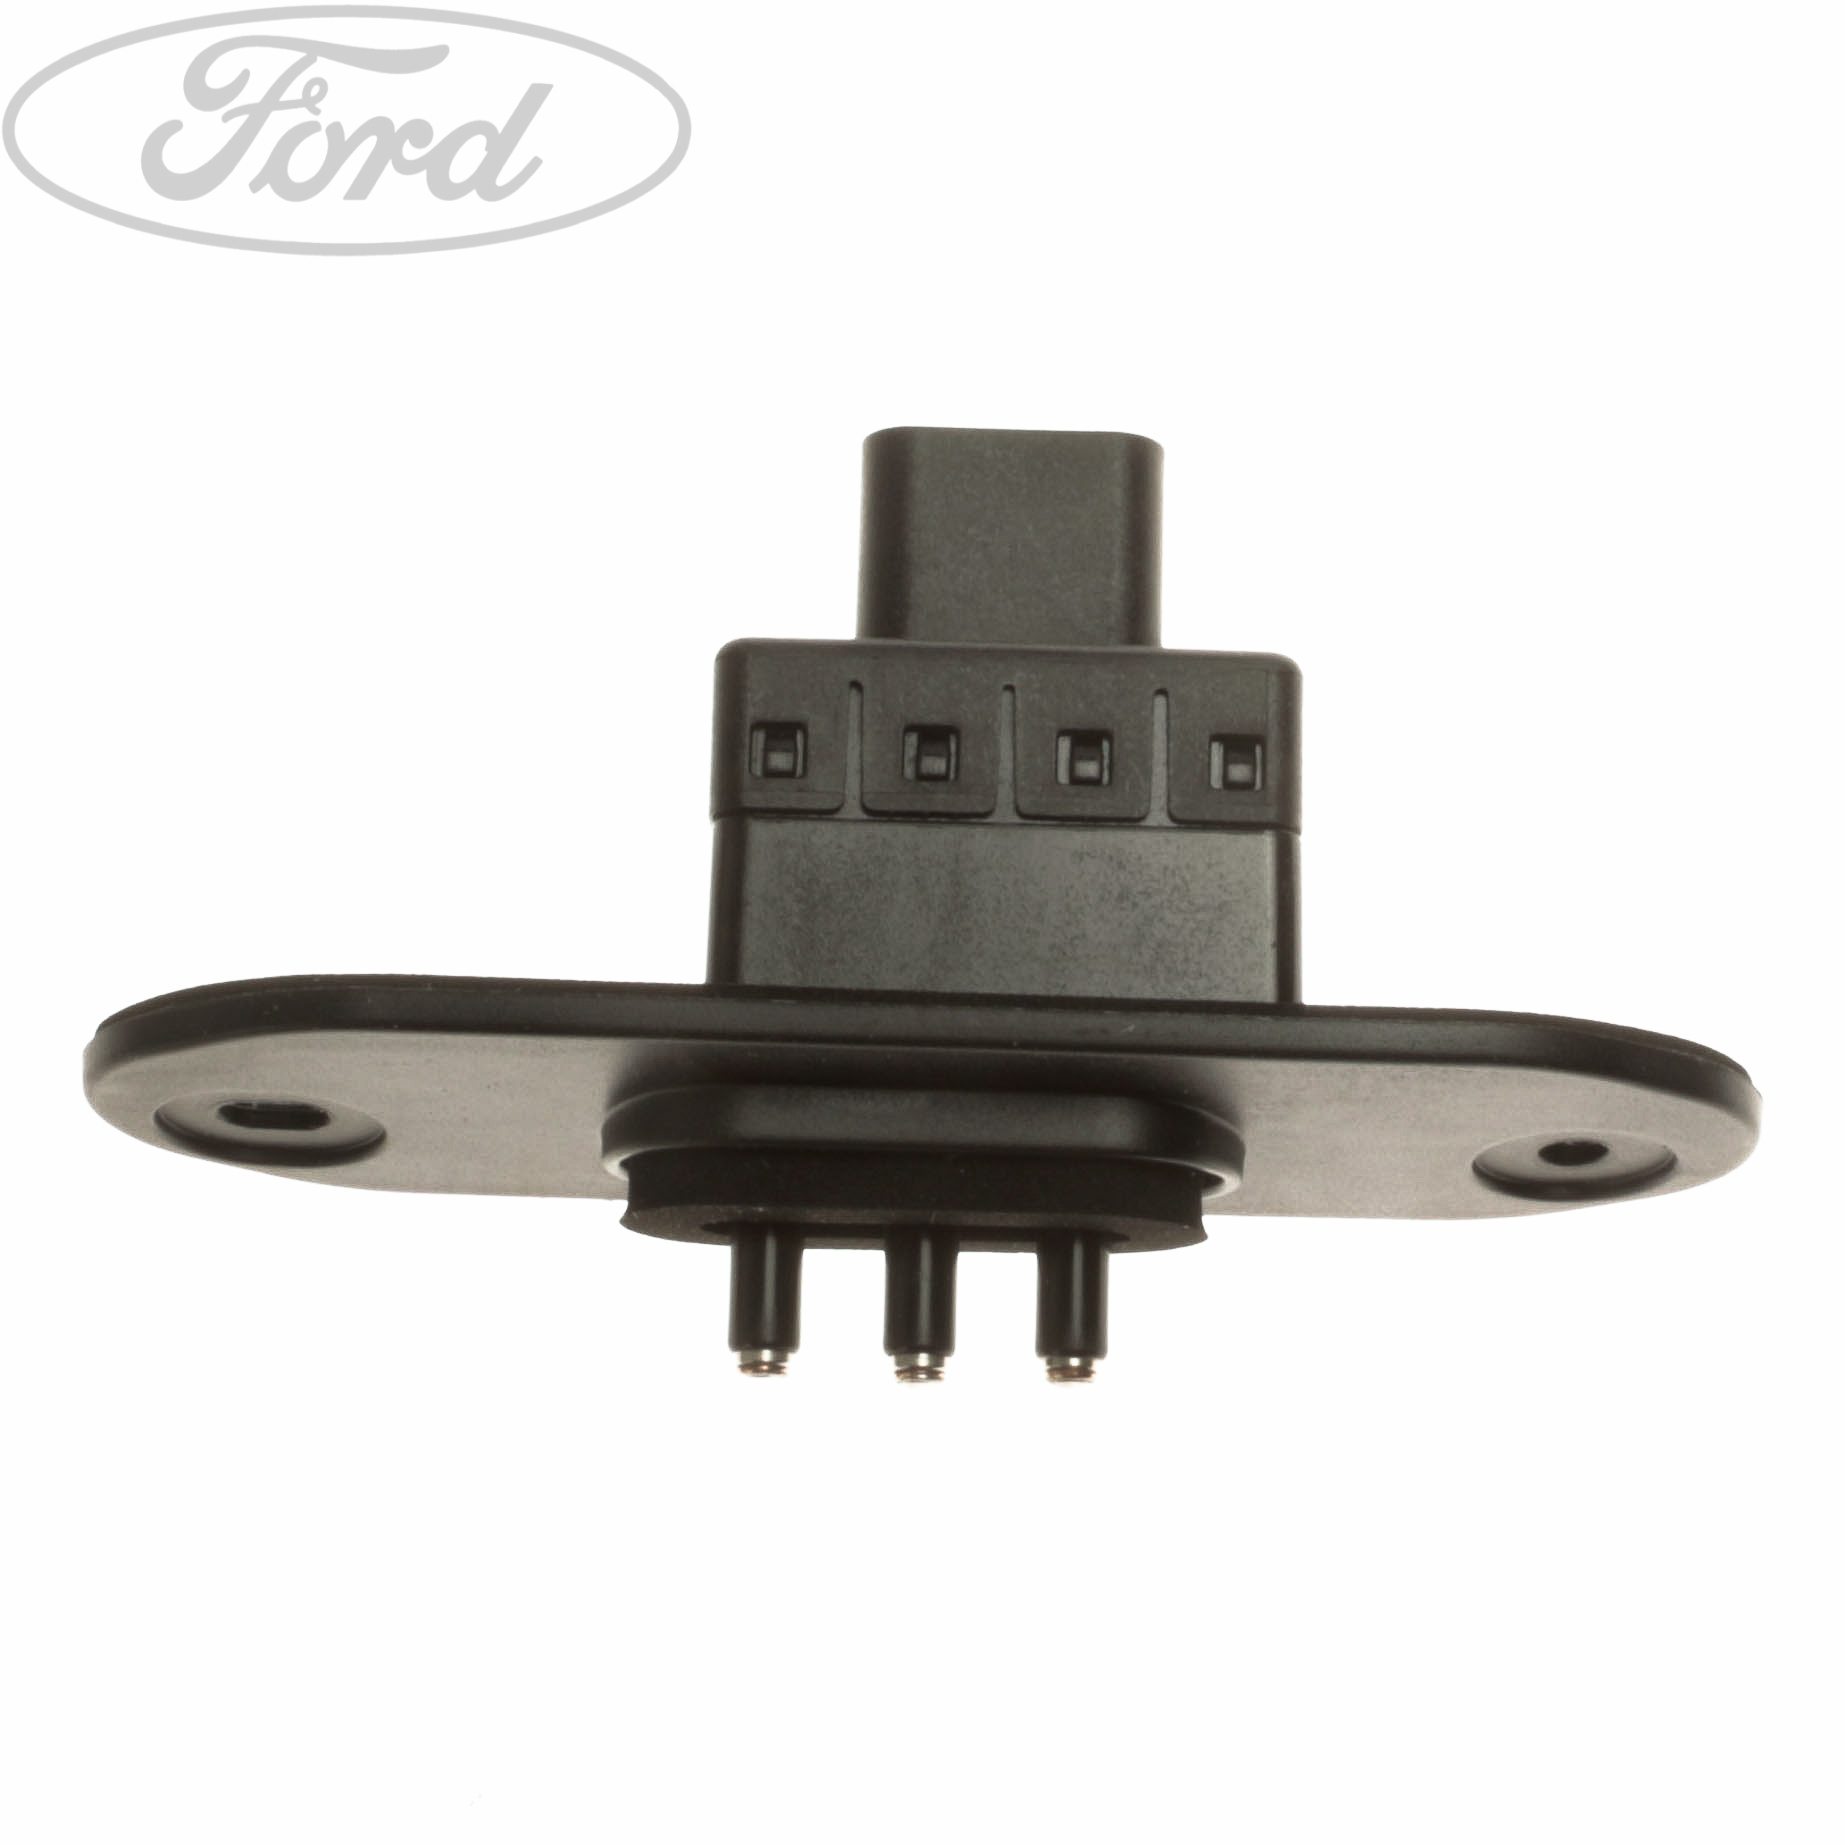 Genuine ford transit mk 7 sliding side door electrical for Telephone number for ford motor company